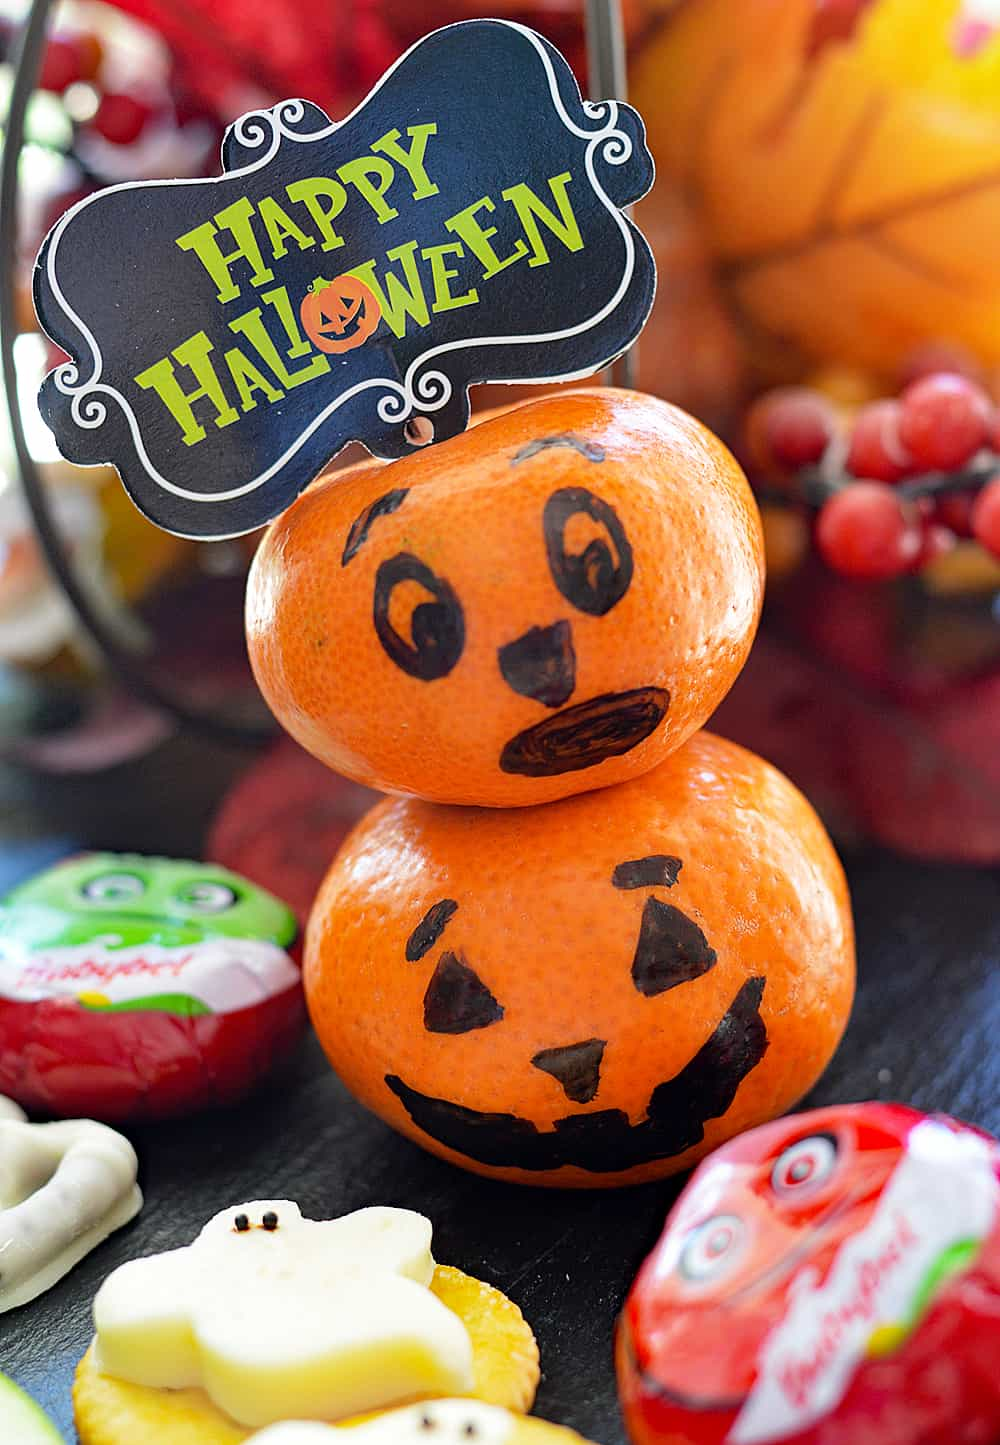 Pumpkin close up for Choose Mini Babybel® at Target for a fun Halloween Treat!